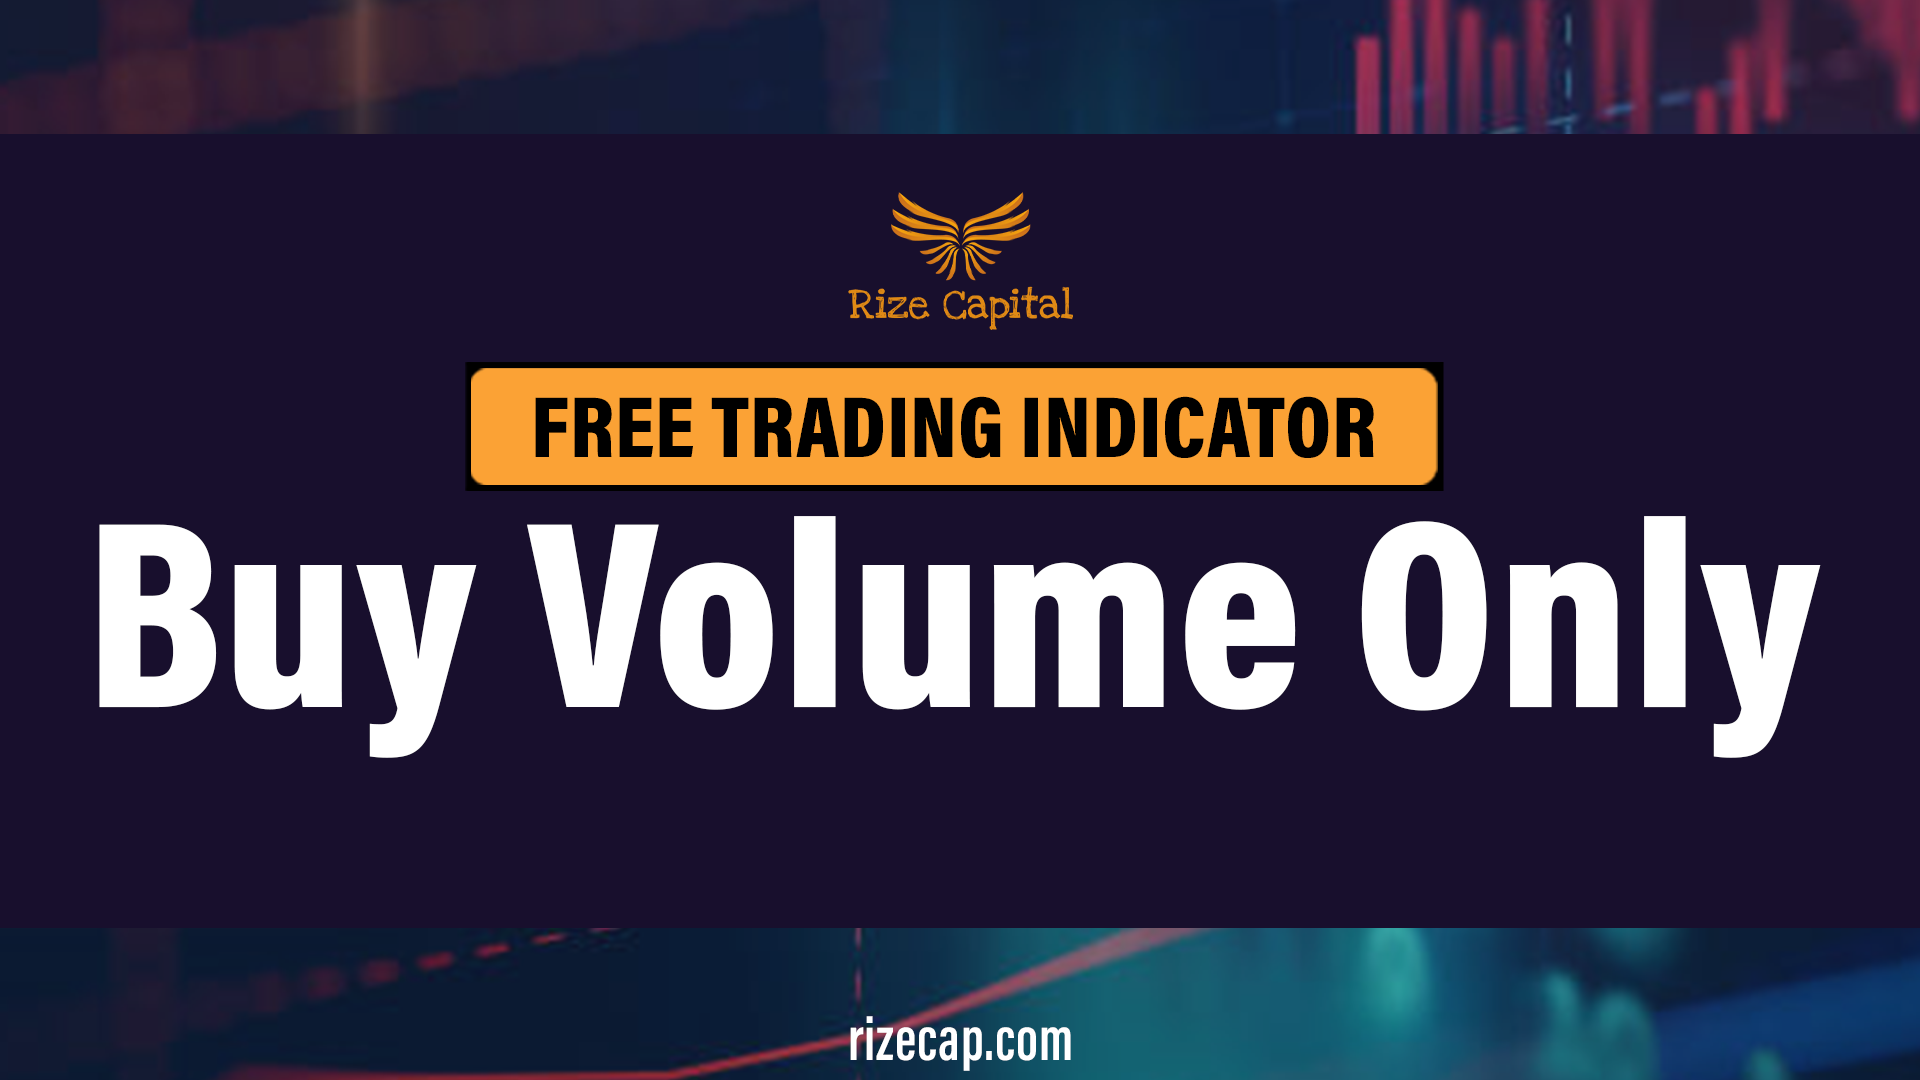 Buy Volume Only Free Indicator